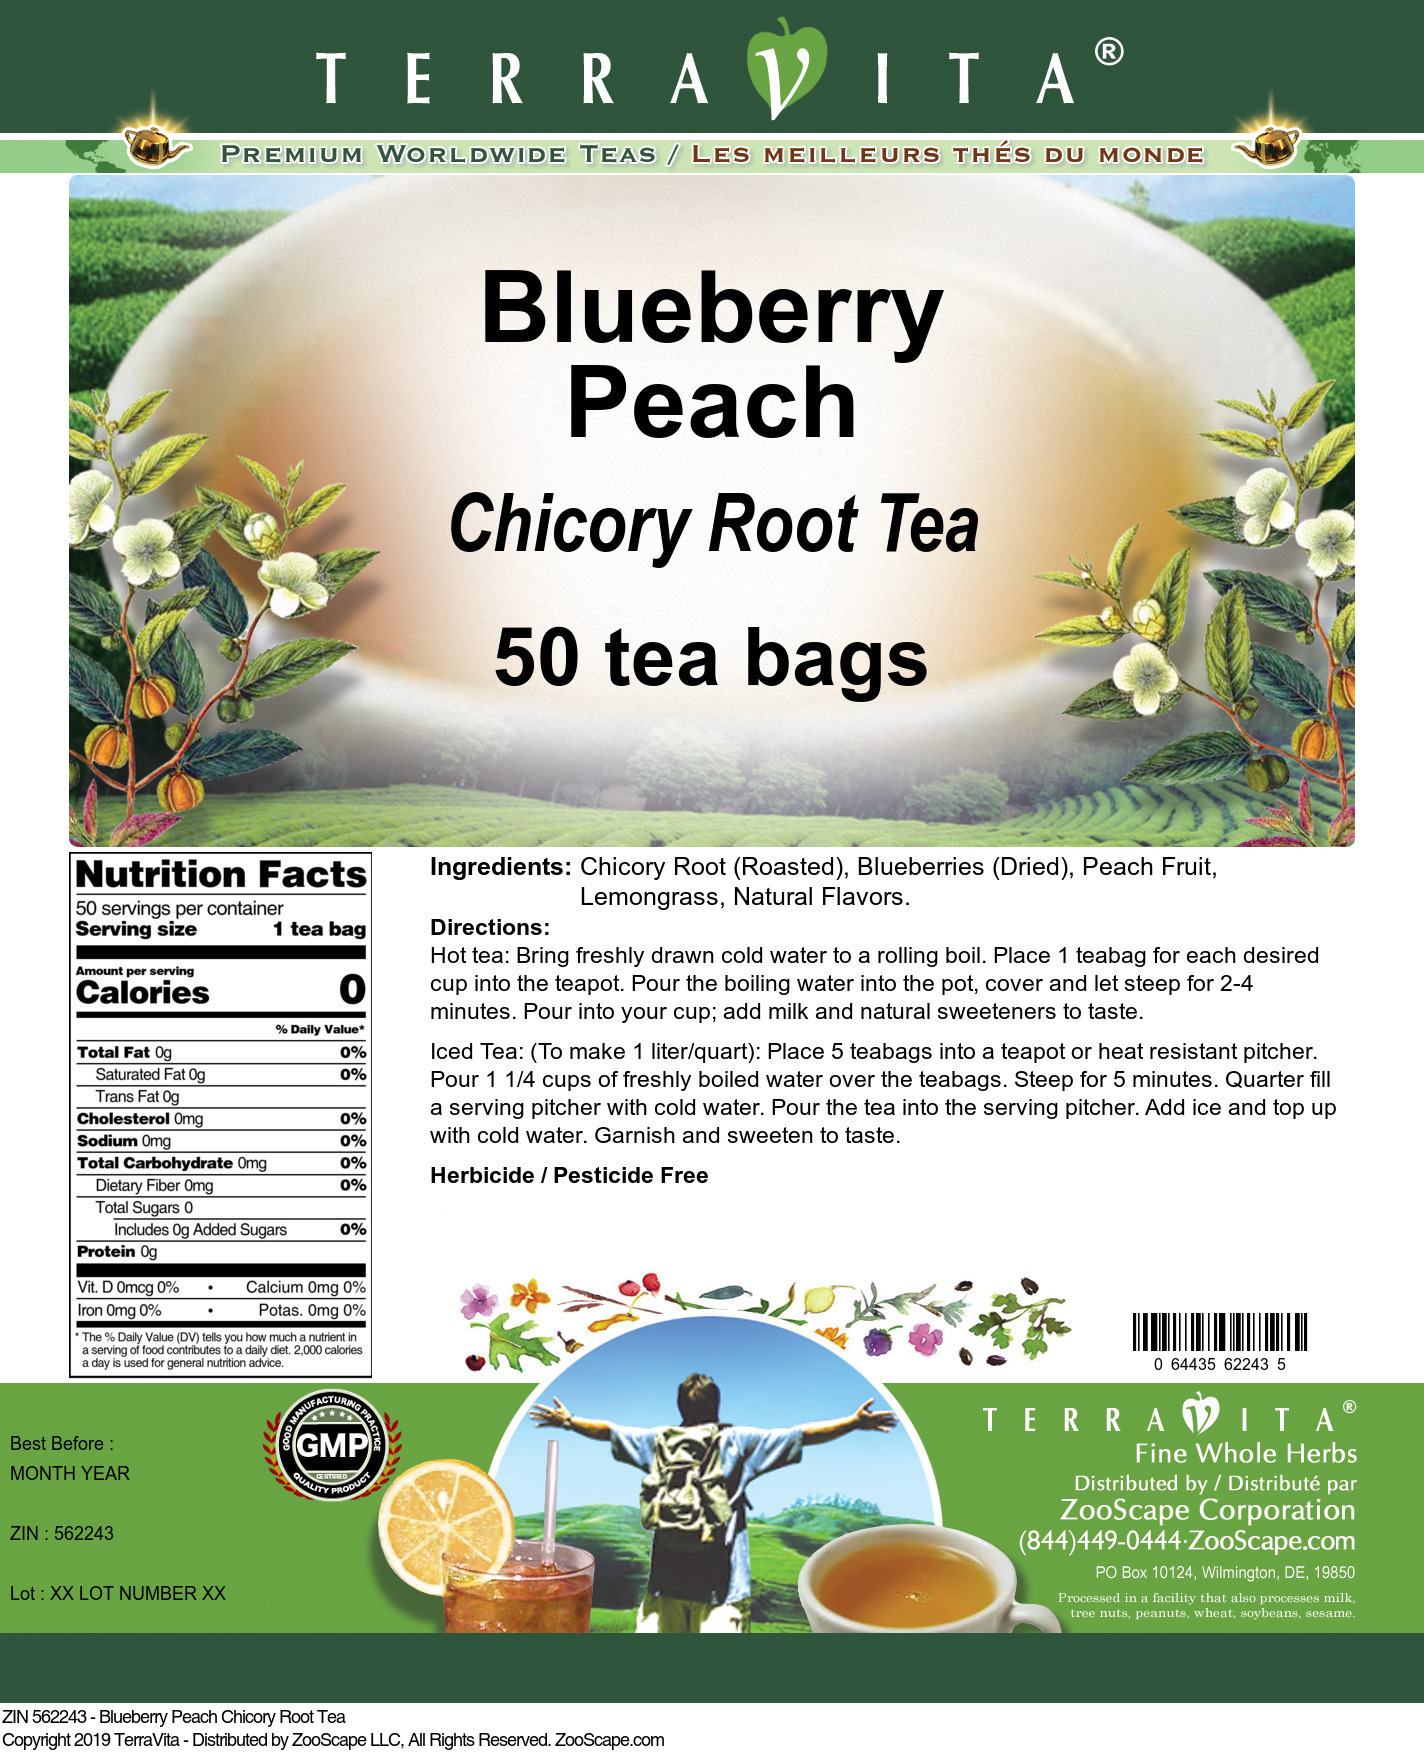 Blueberry Peach Chicory Root